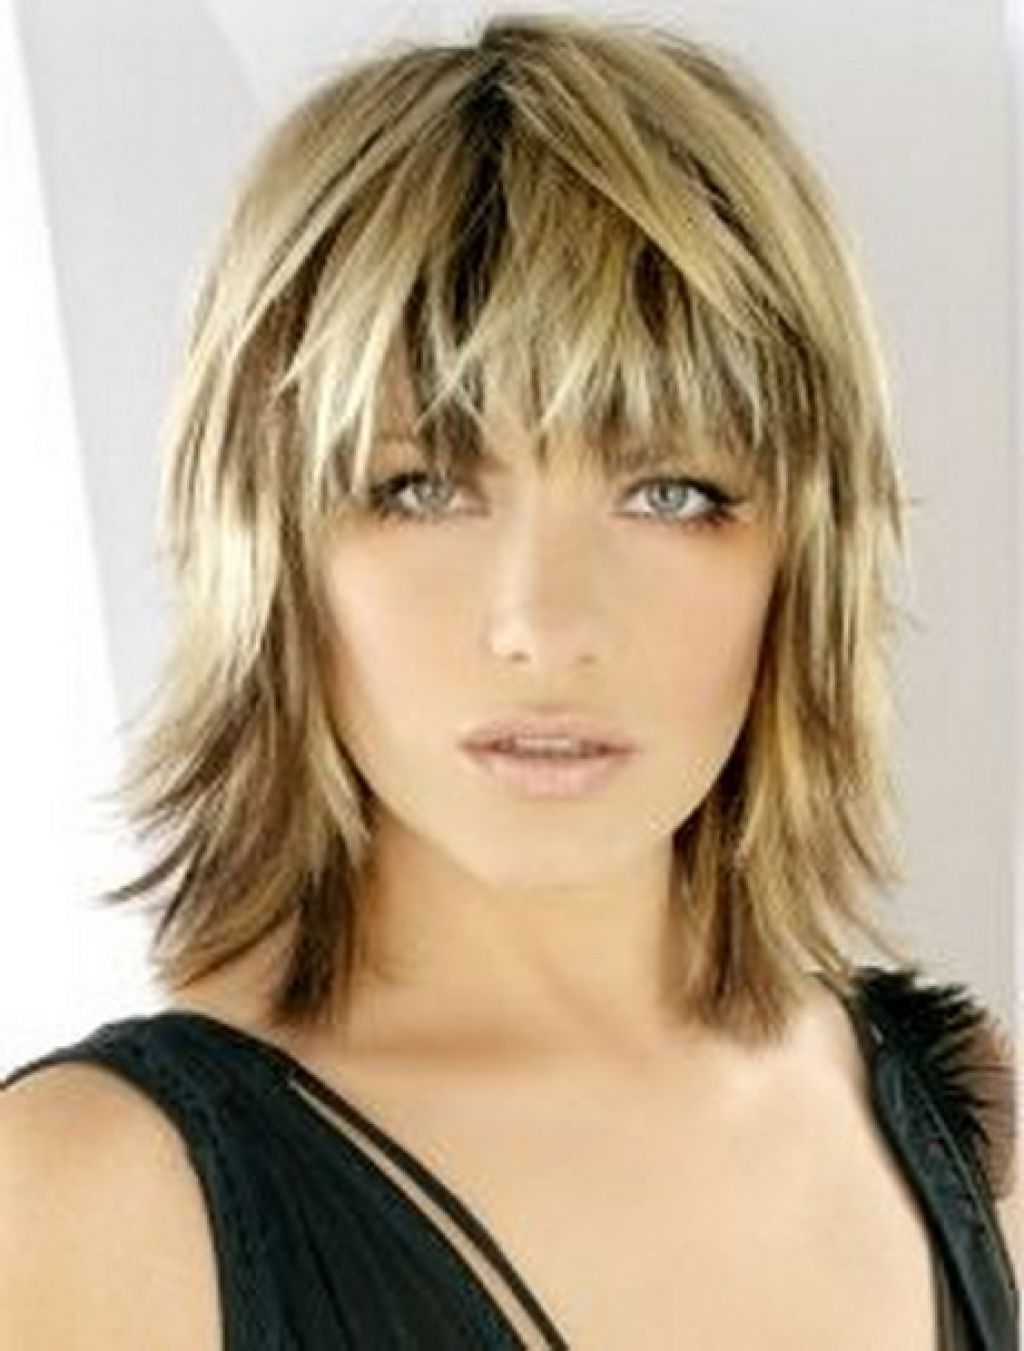 Blonde Medium Length Choppy Shag Haircut With Wispy Bangs And Dark Throughout Recent Medium Hairstyles With Wispy Bangs (View 5 of 20)